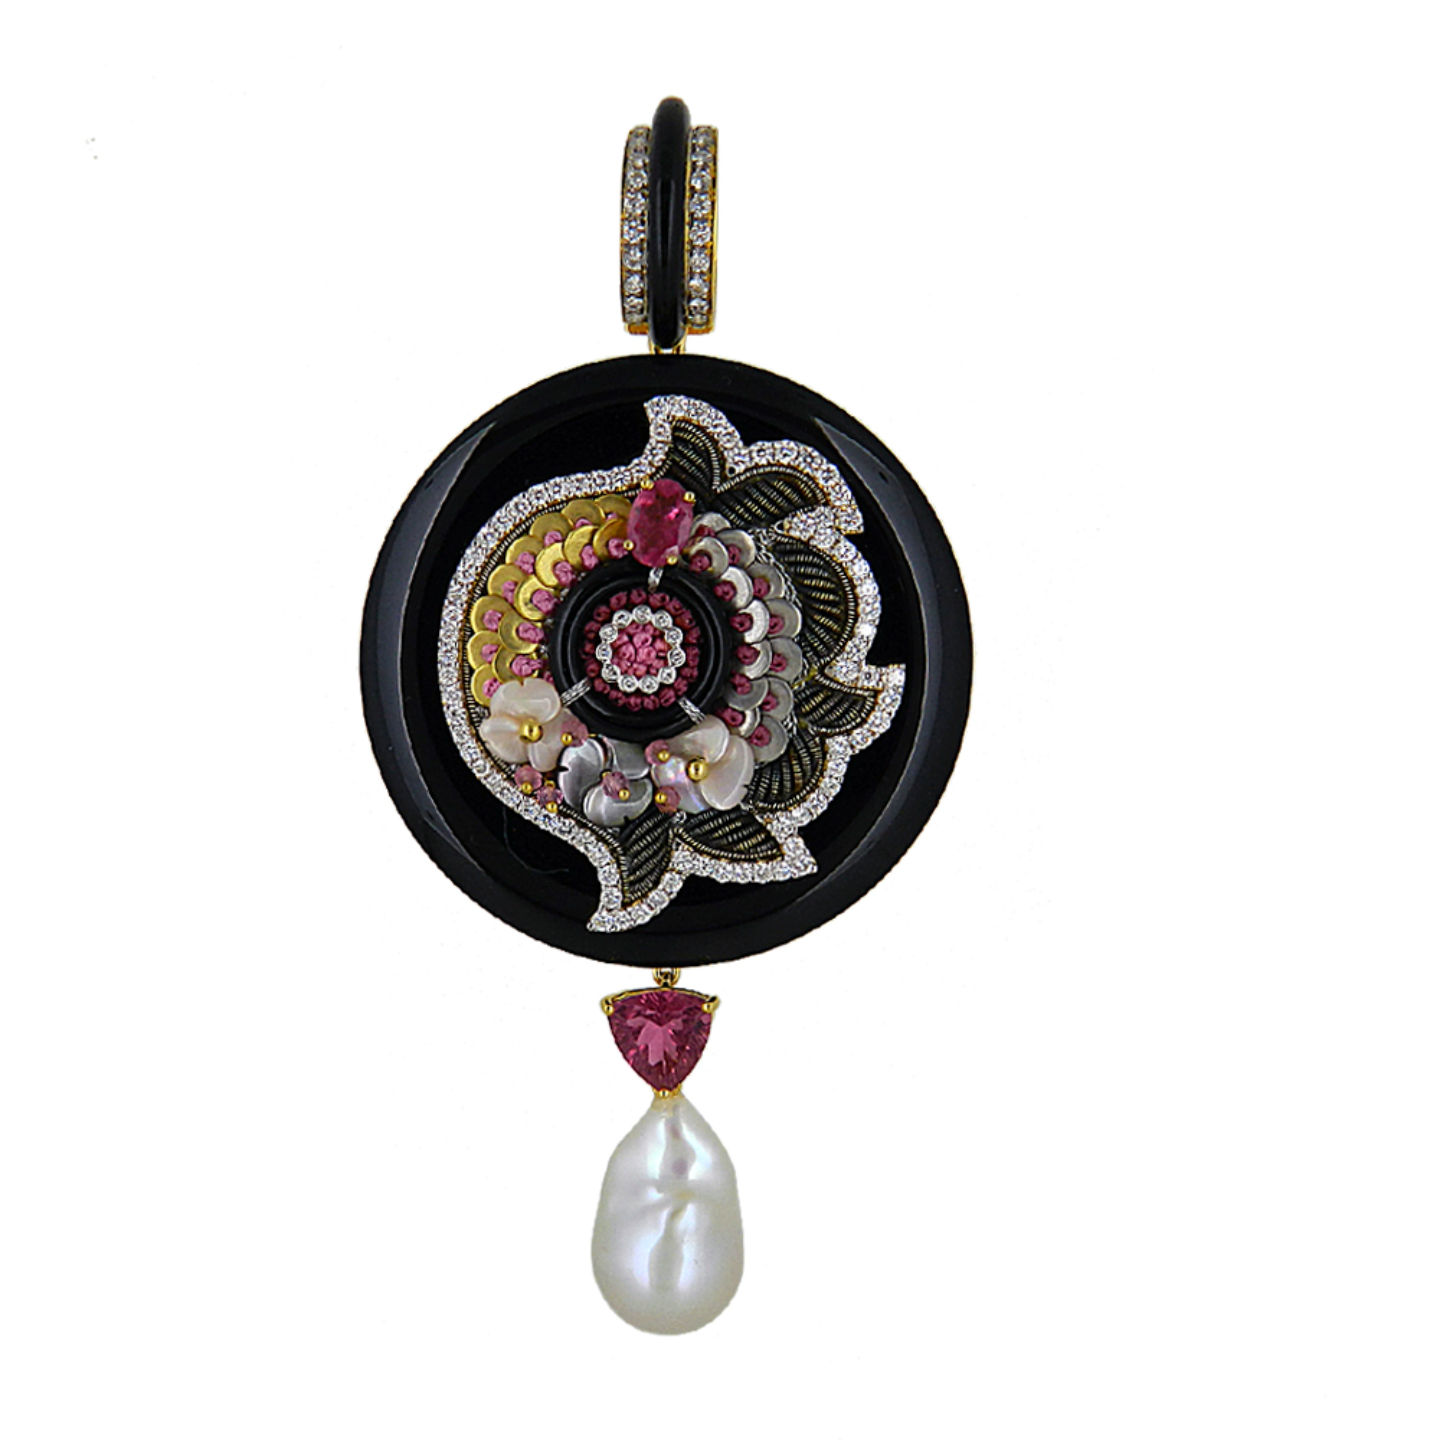 An opulent circular pendant set in pink and black combination crafted using precious gold sequins and wires embellished with gemstones and diamonds